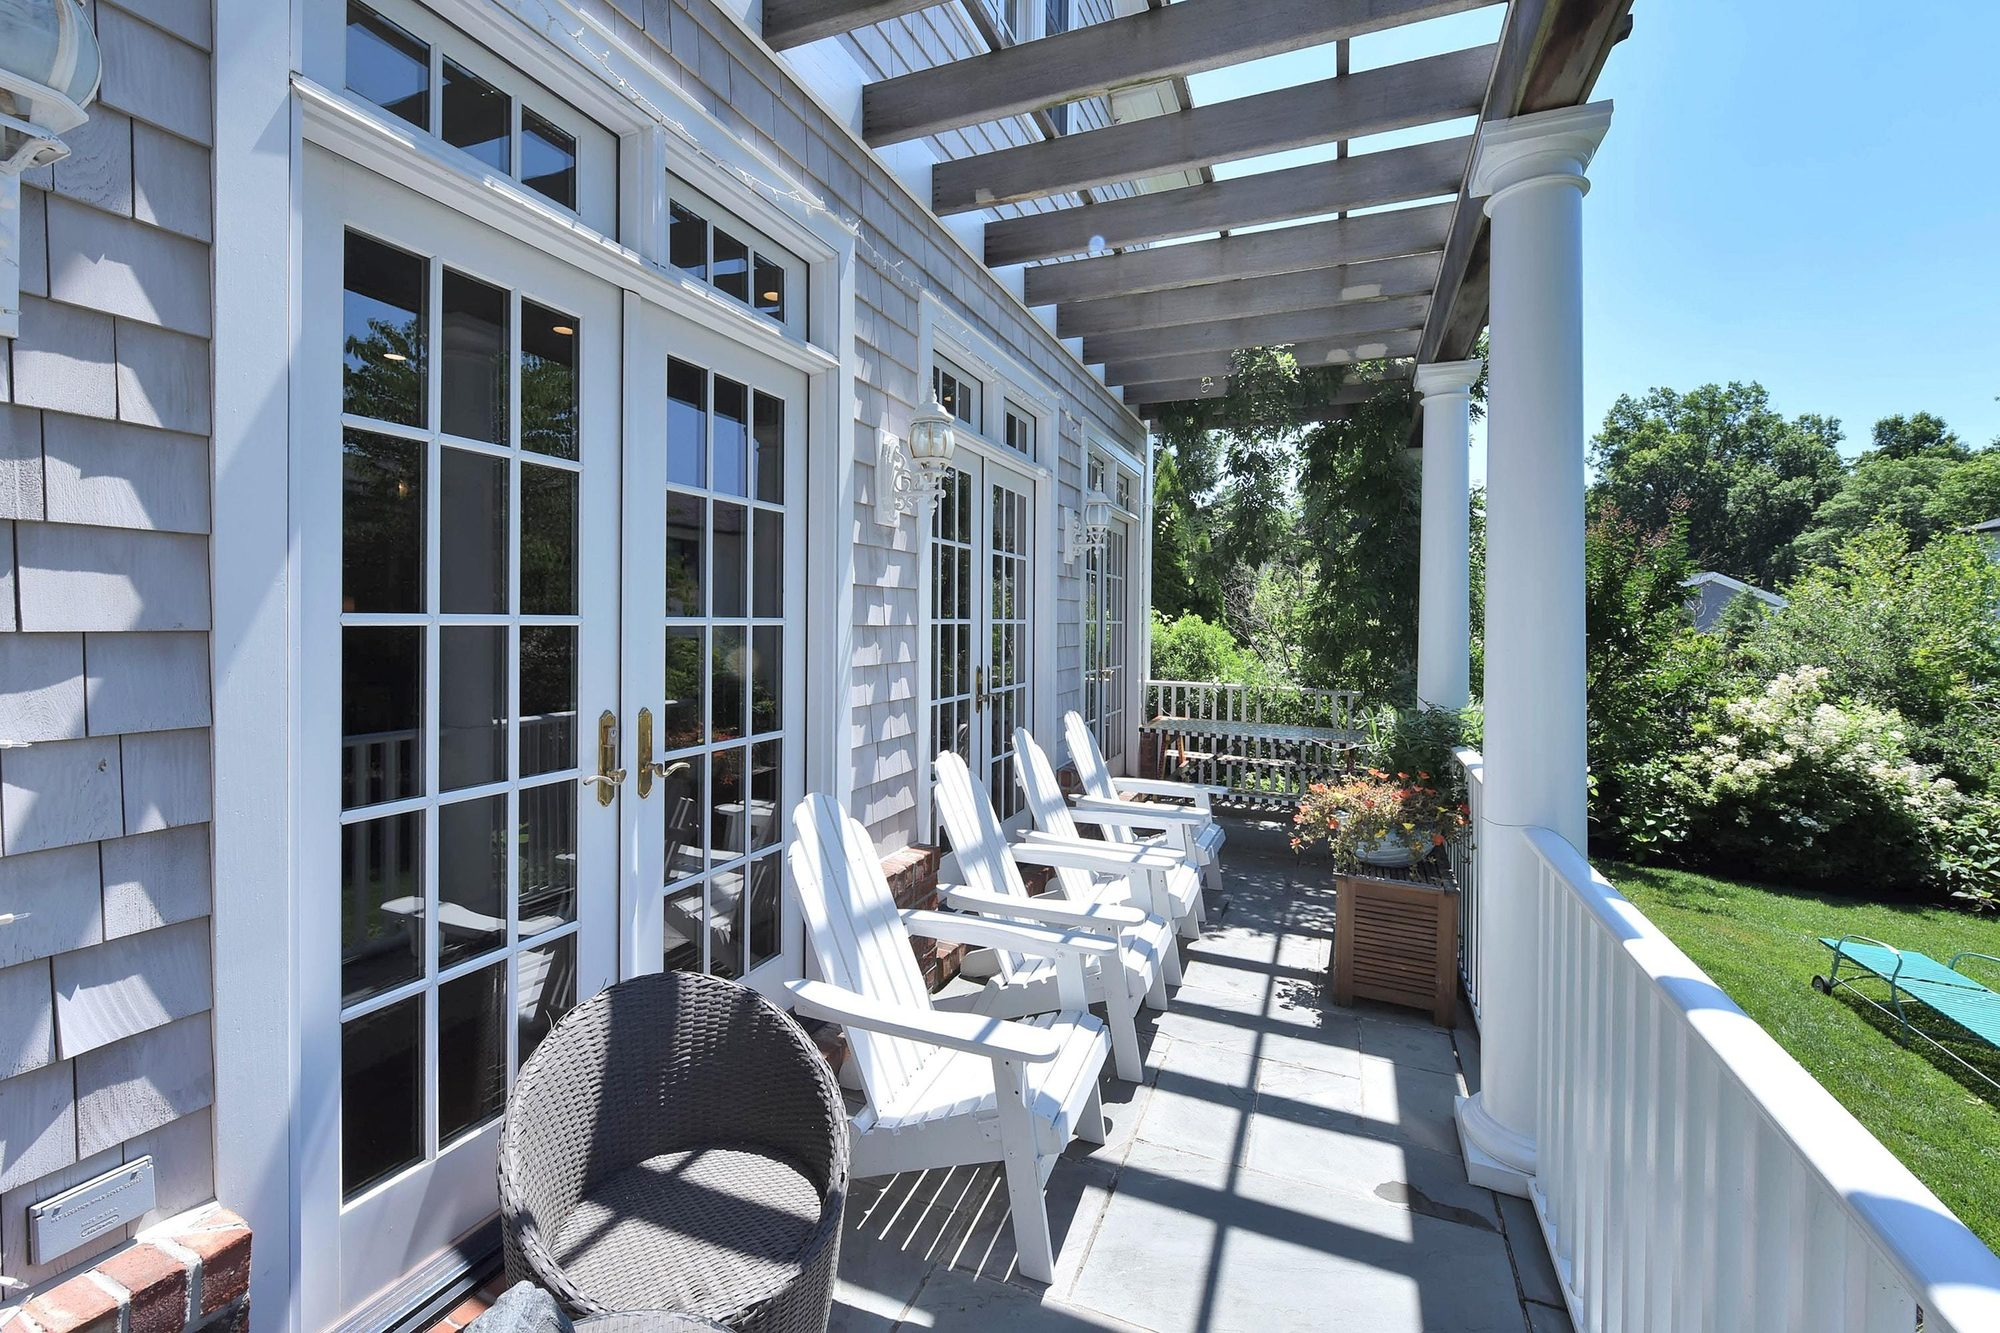 painted outdoor furniture ideas. white painted folding patio chairs on a back patio with arbor.